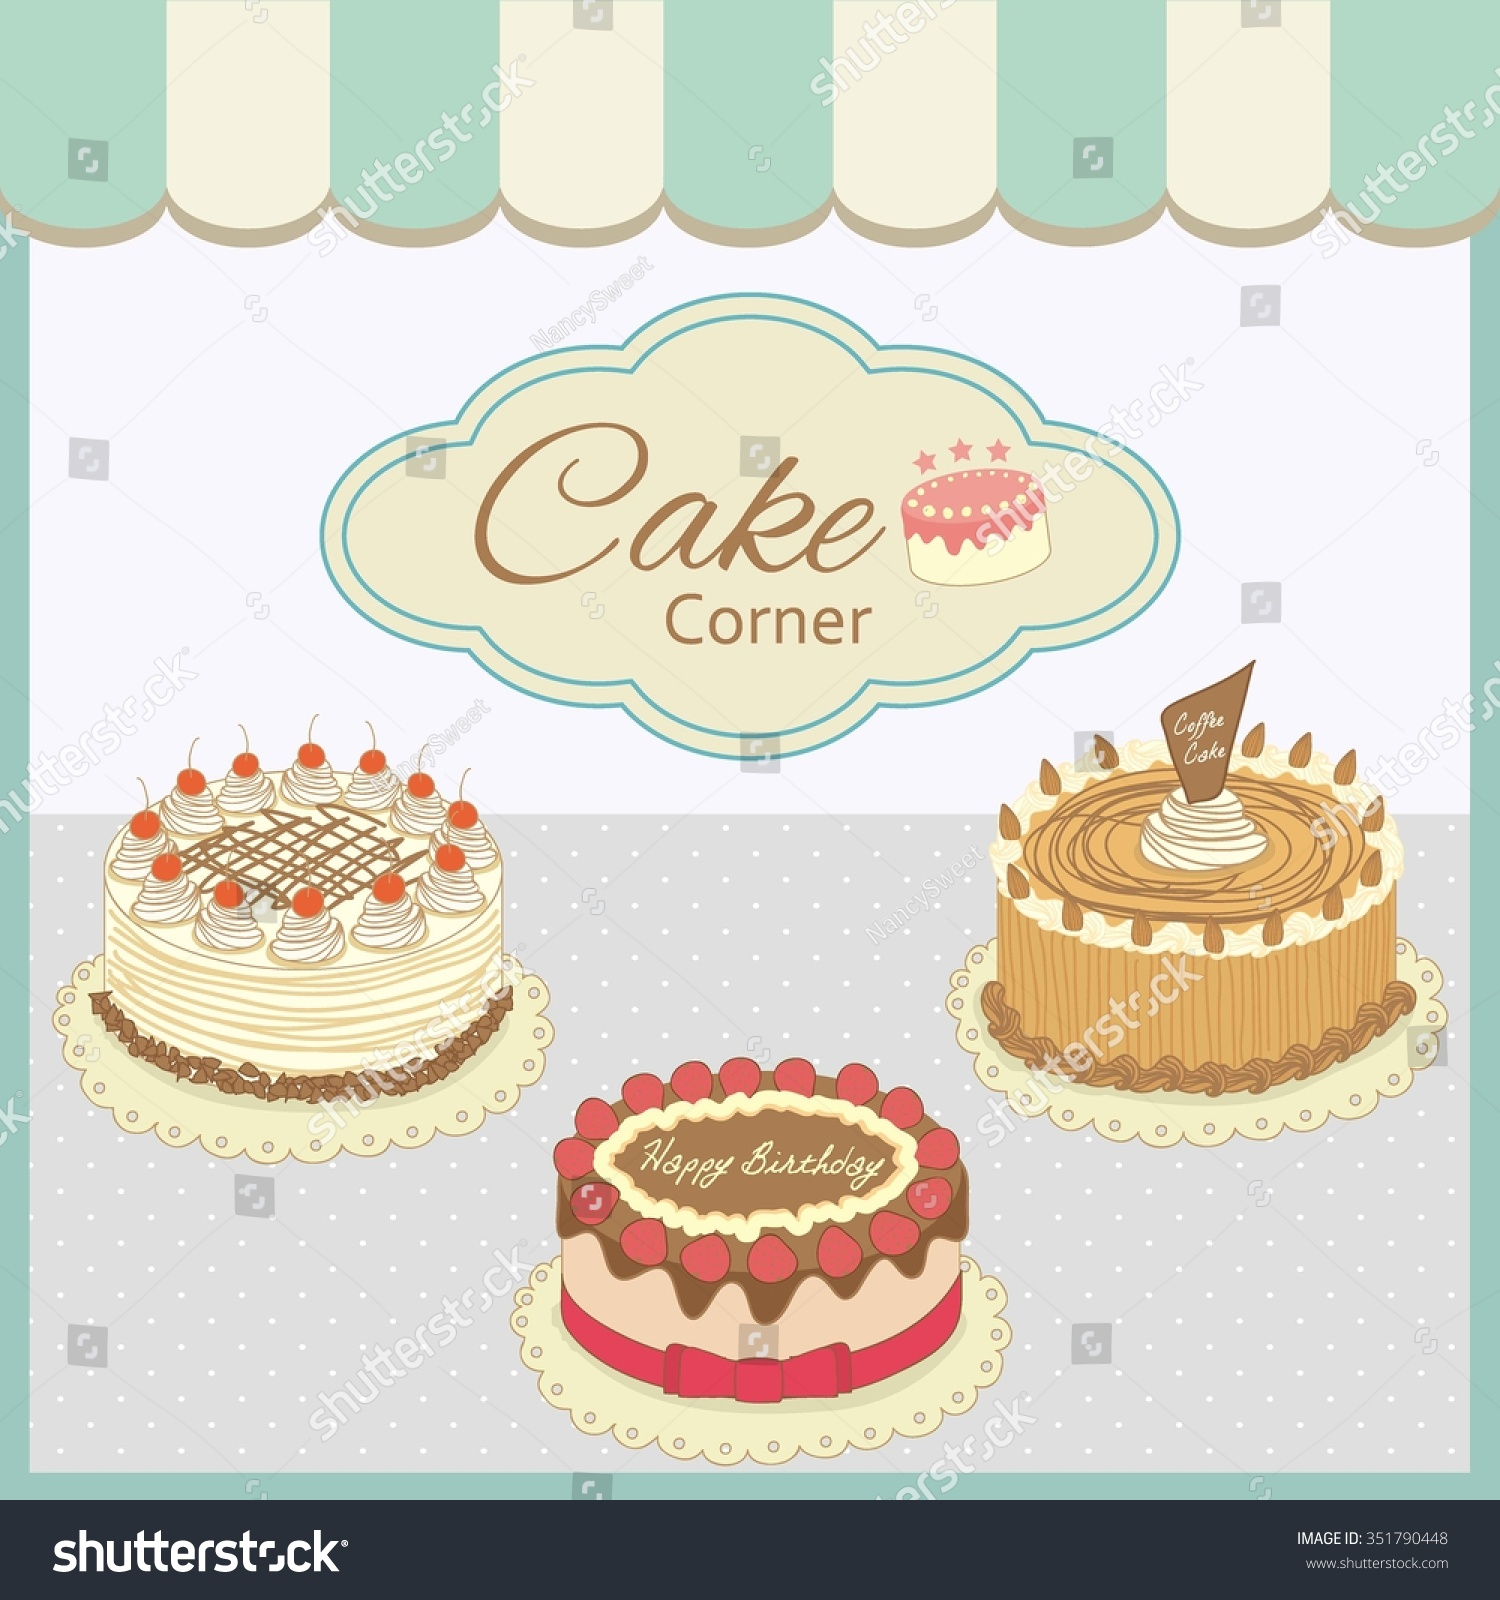 vector drawing bakery cafe cakes show stock vector 351790448